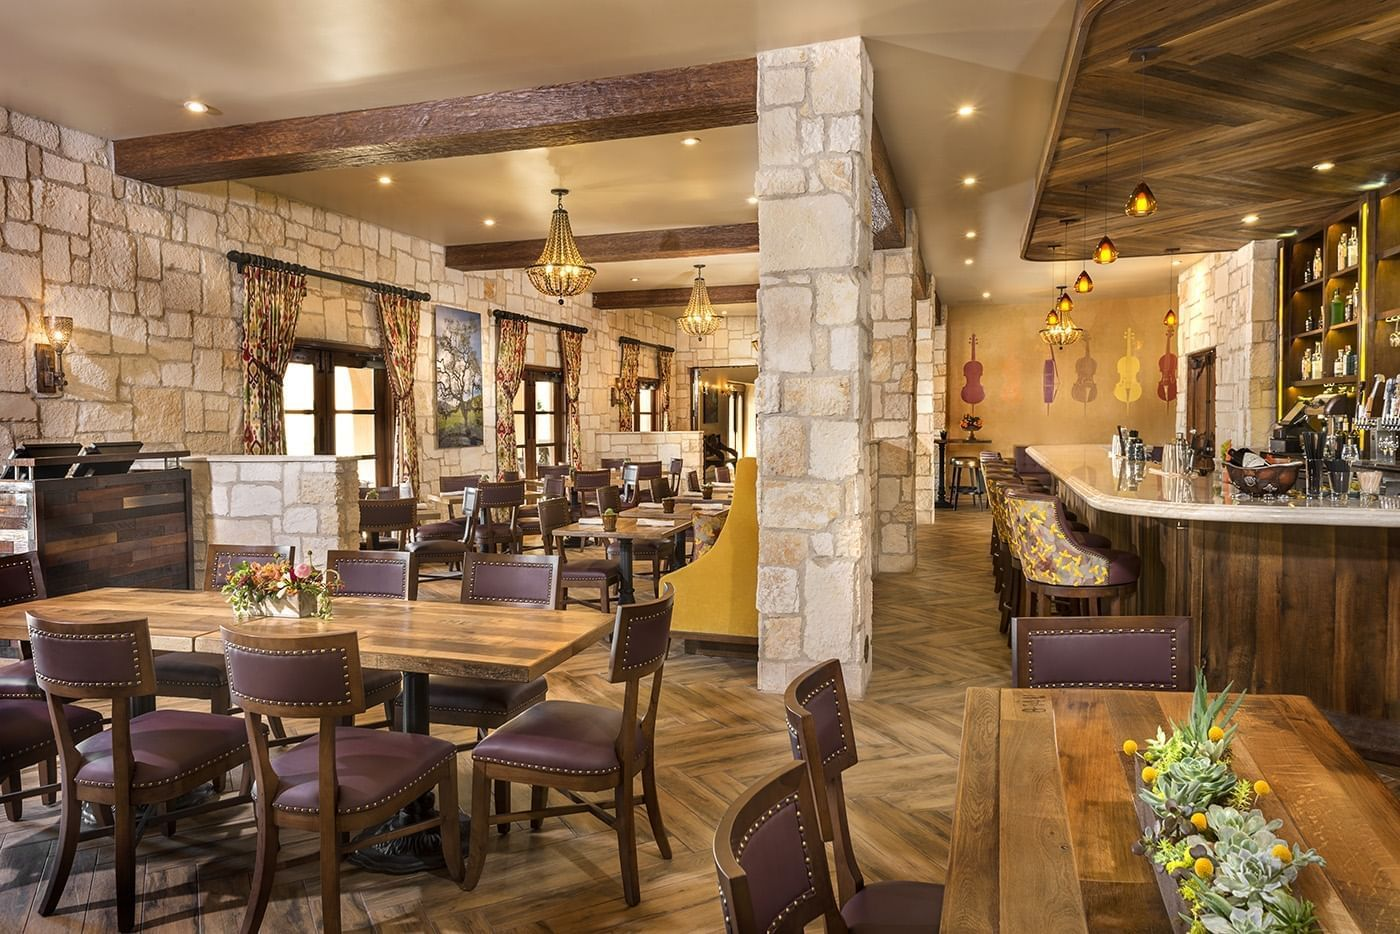 Looking through the Cello Restaurant with stone walls and wood b